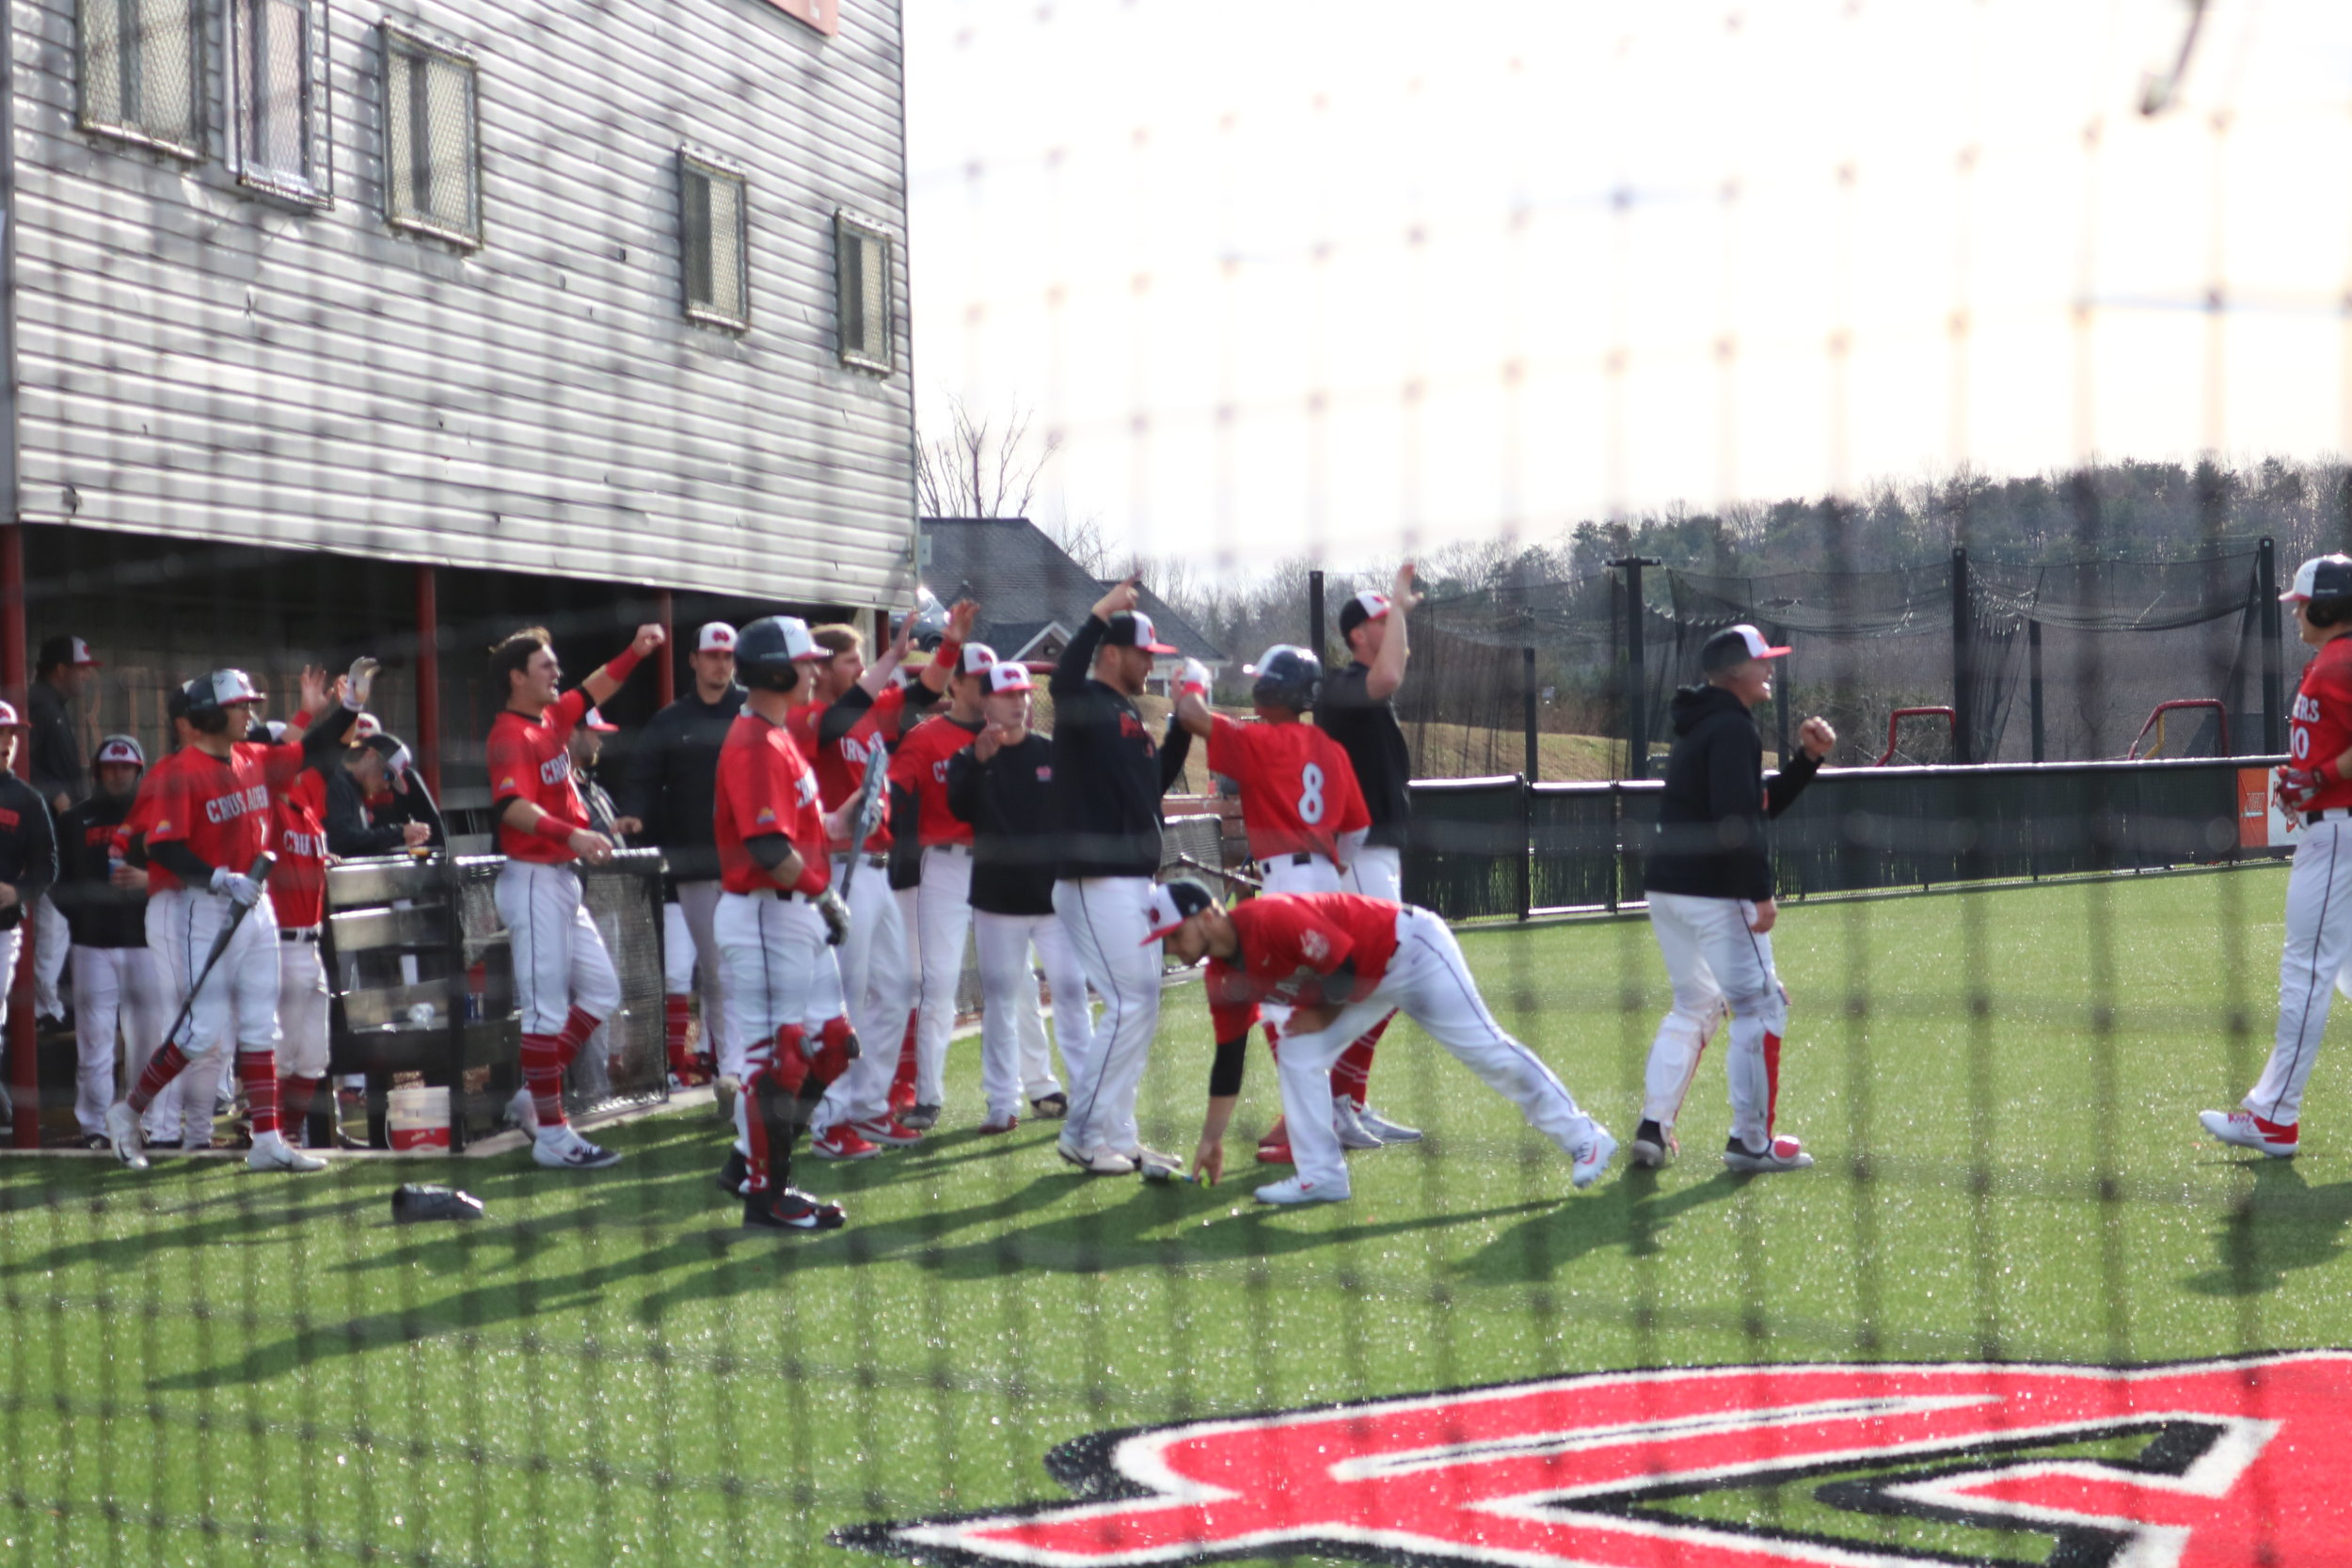 The Crusaders high five Whitehead (8) as he heads in from home plate, scoring the first point of the season.